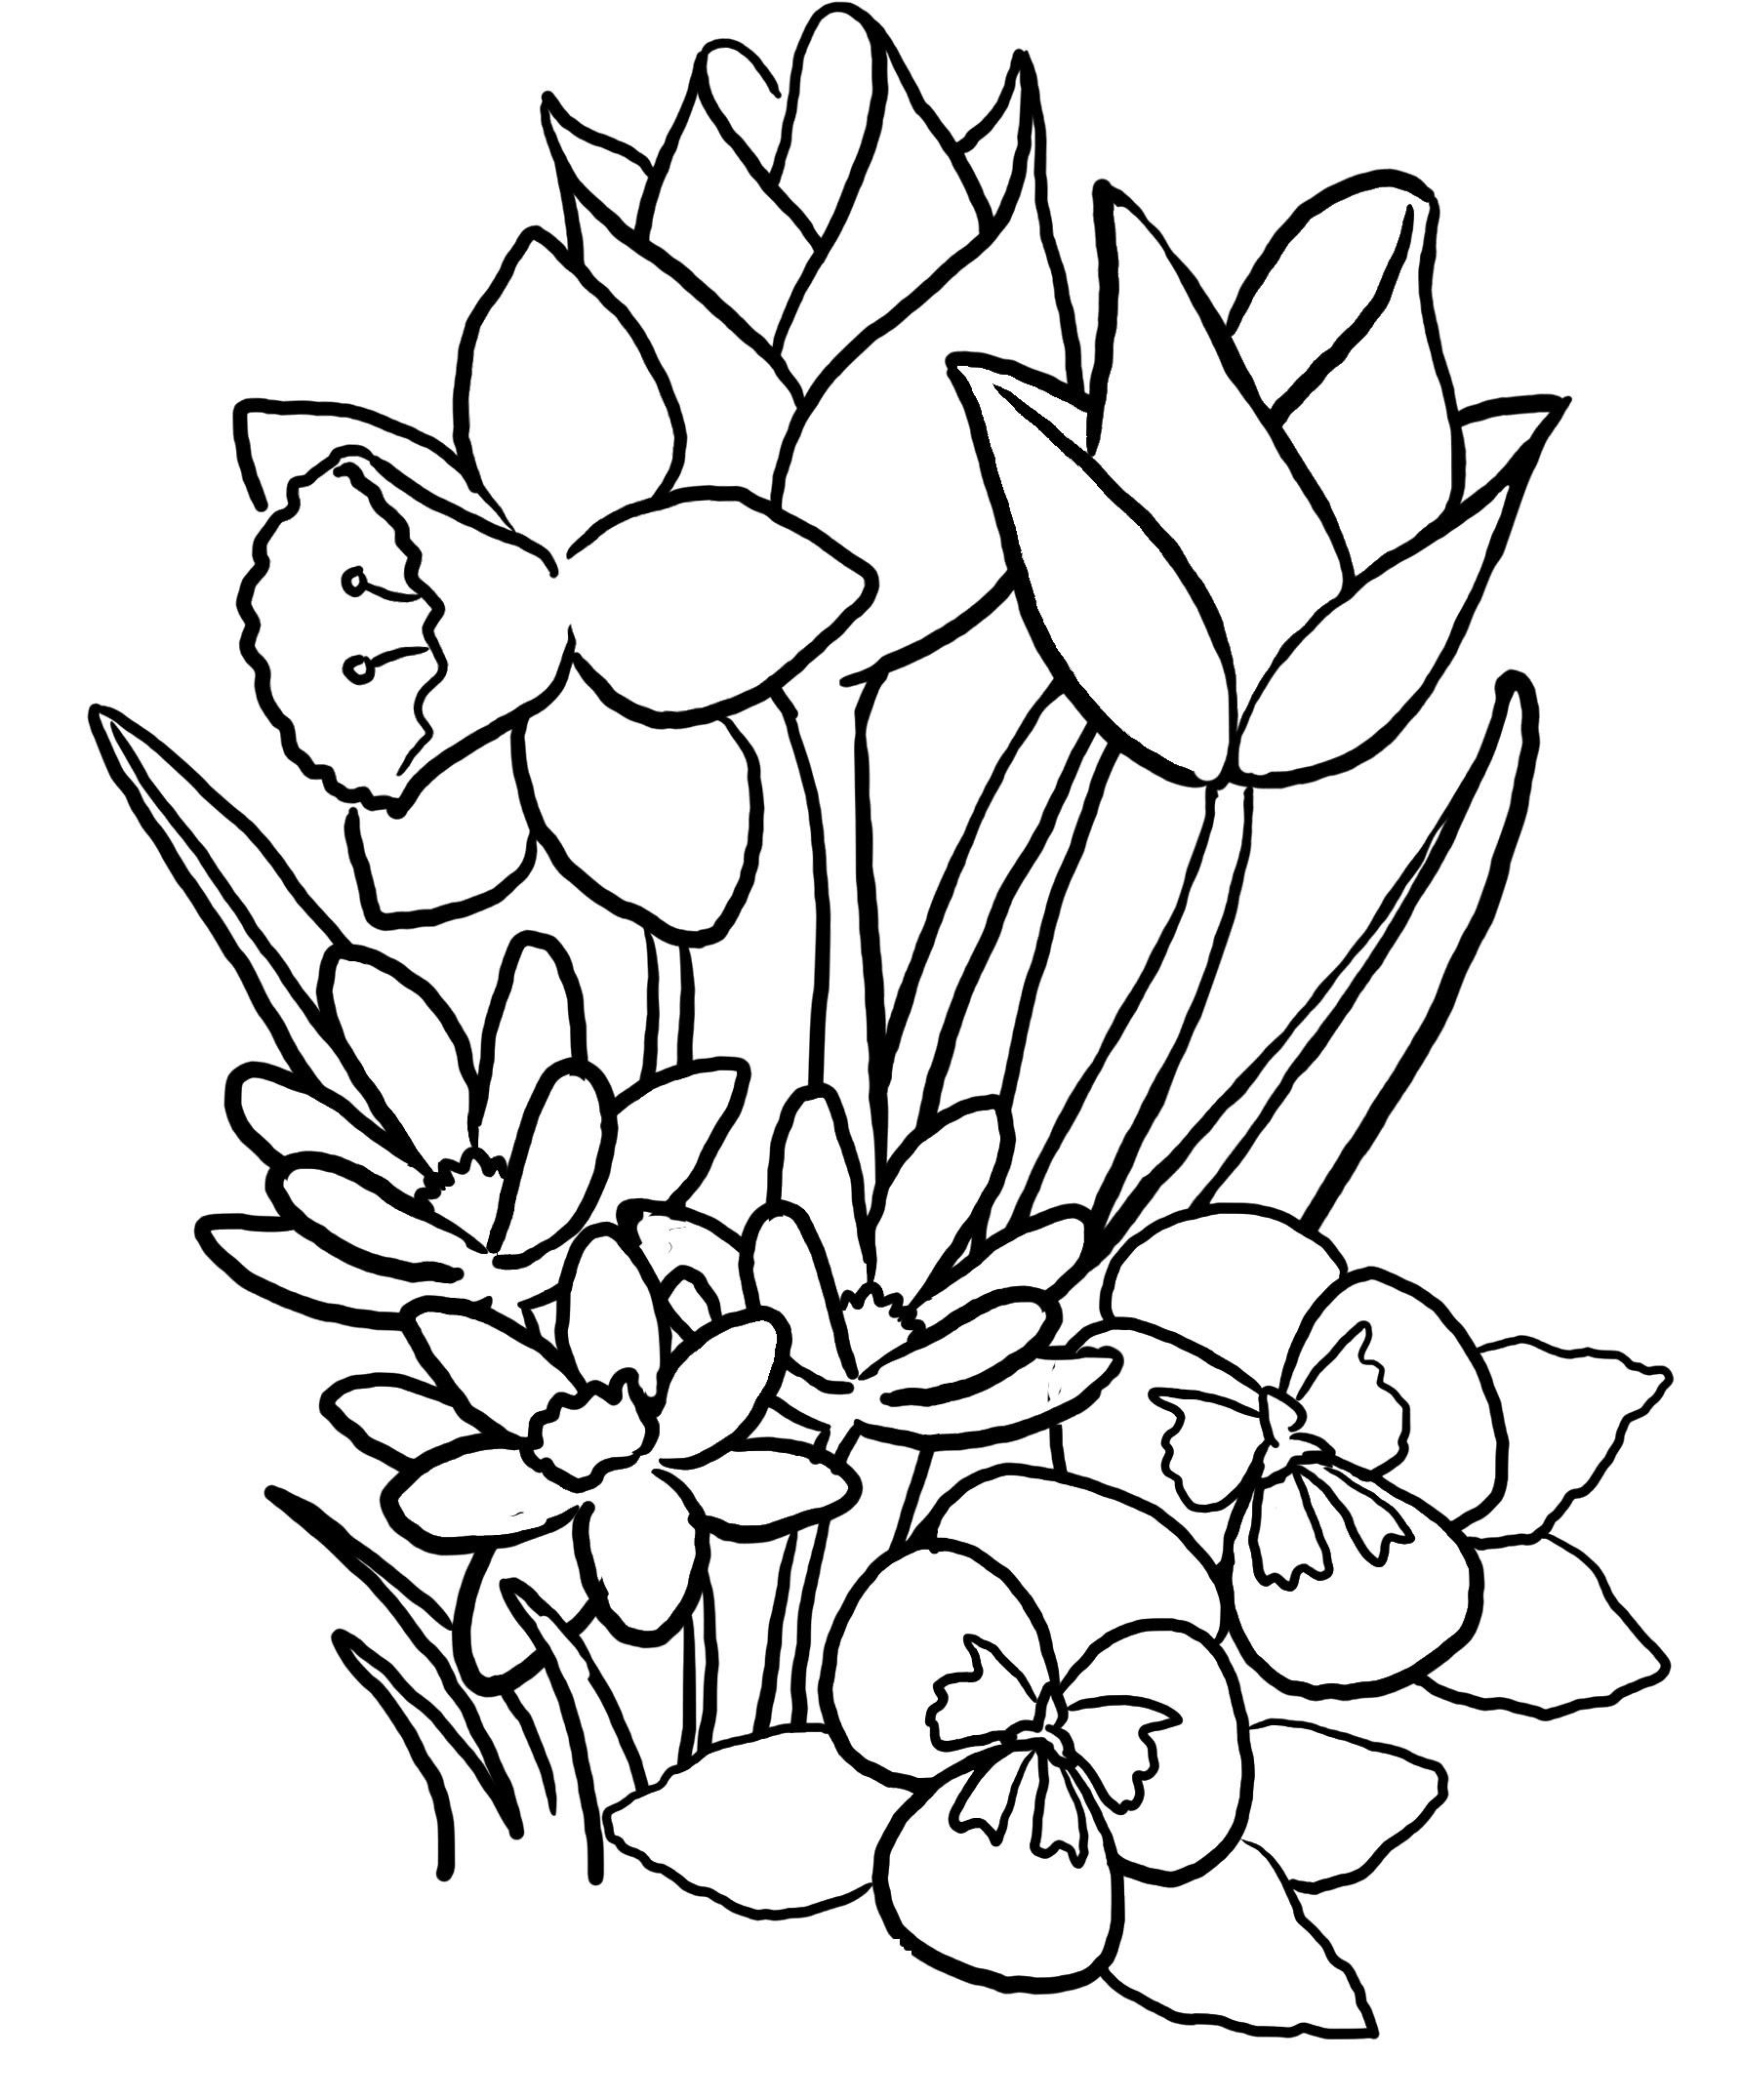 A Flower Coloring Page Youngandtae Com In 2020 Printable Flower Coloring Pages Mandala Coloring Pages Spring Coloring Pages